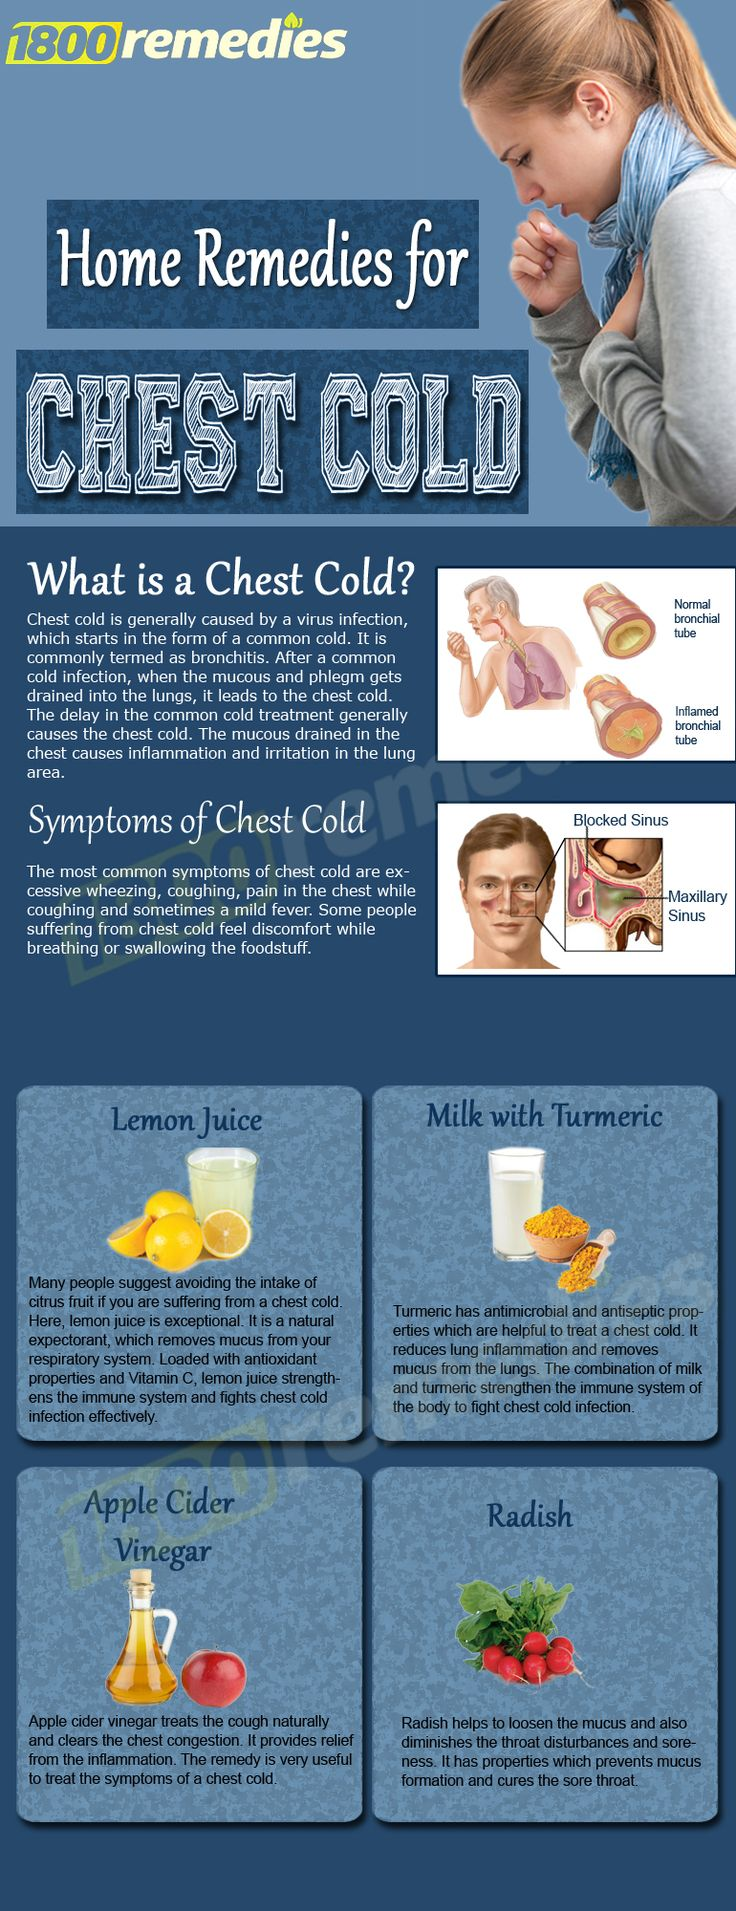 he home remedies for chest cold are easy to use and provide quick results. Let's have a look.                                                                                                                                                     More